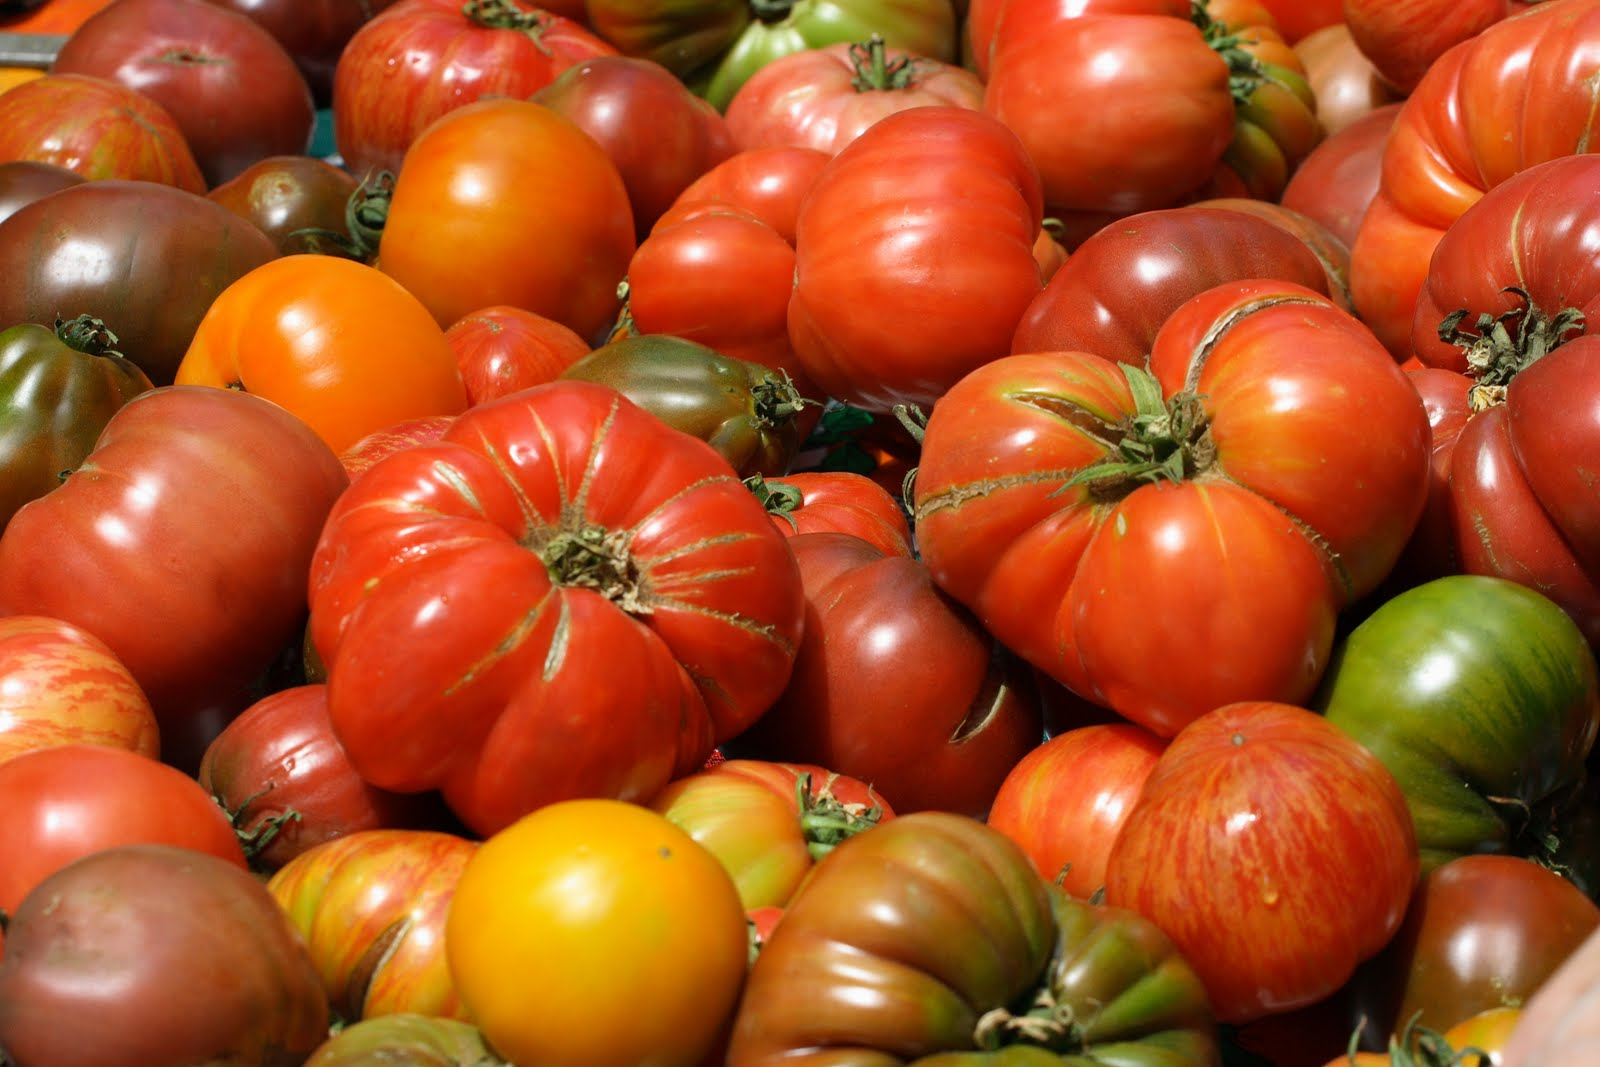 Organic Large Heirloom Tomatoes 3lb